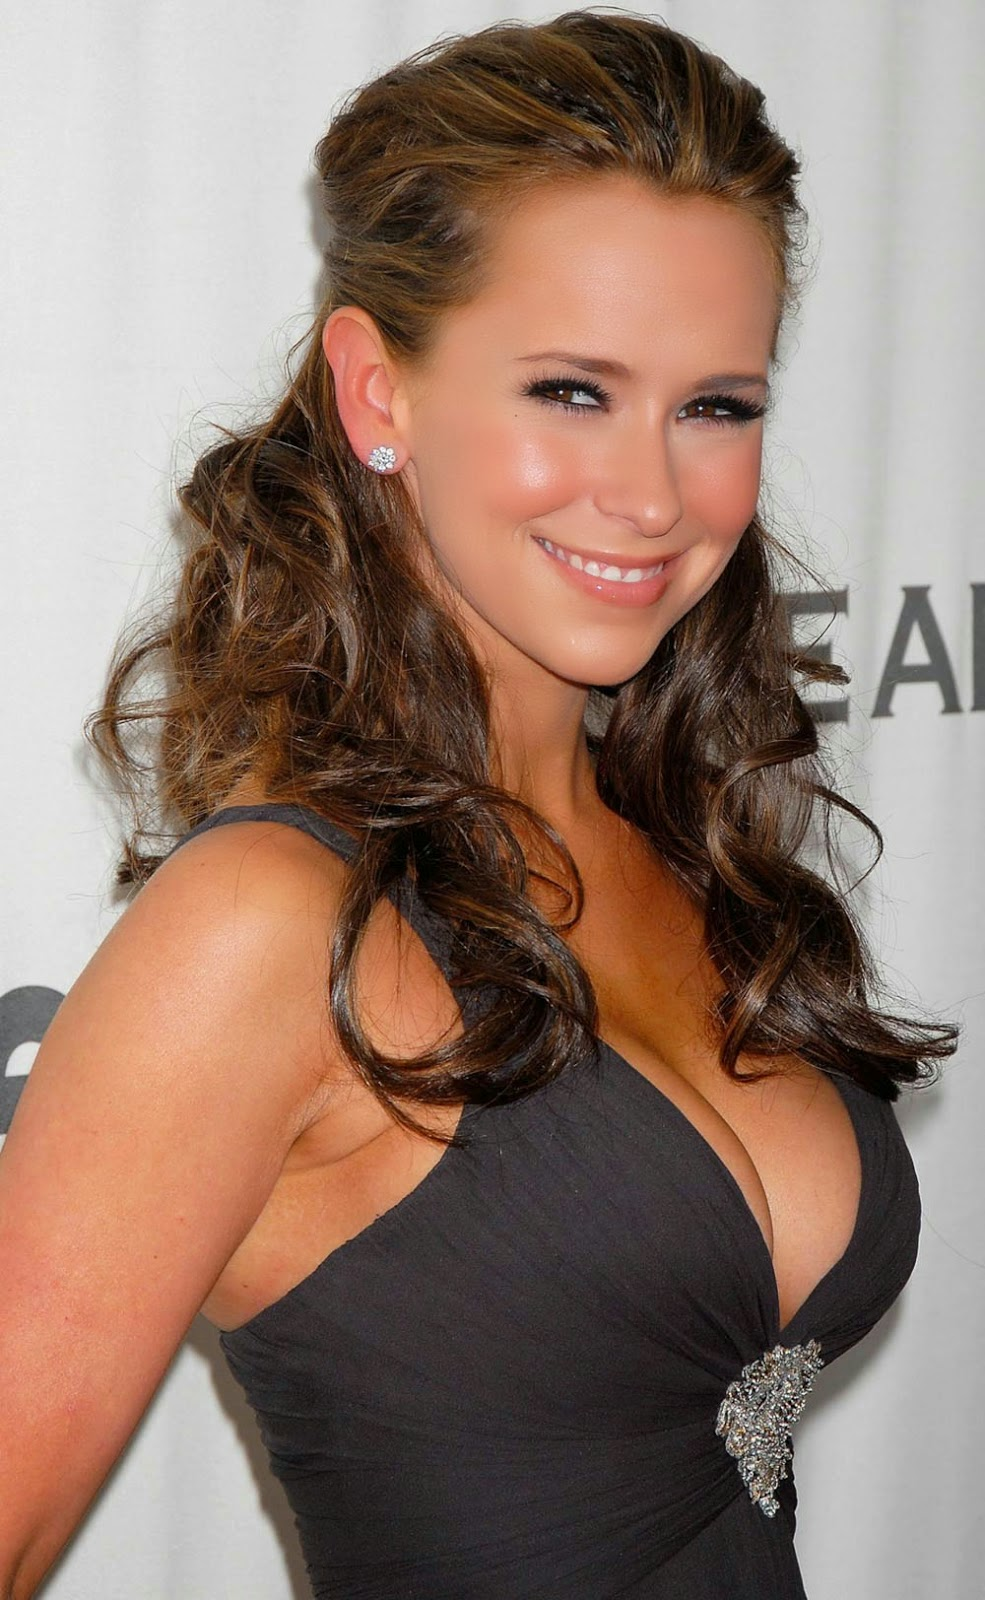 Wallpaper Hd Jennifer Love : HD WALLPAPERS FREE DOWNLOAD: Jennifer Love Hewitt HD Wallpapers Free Download